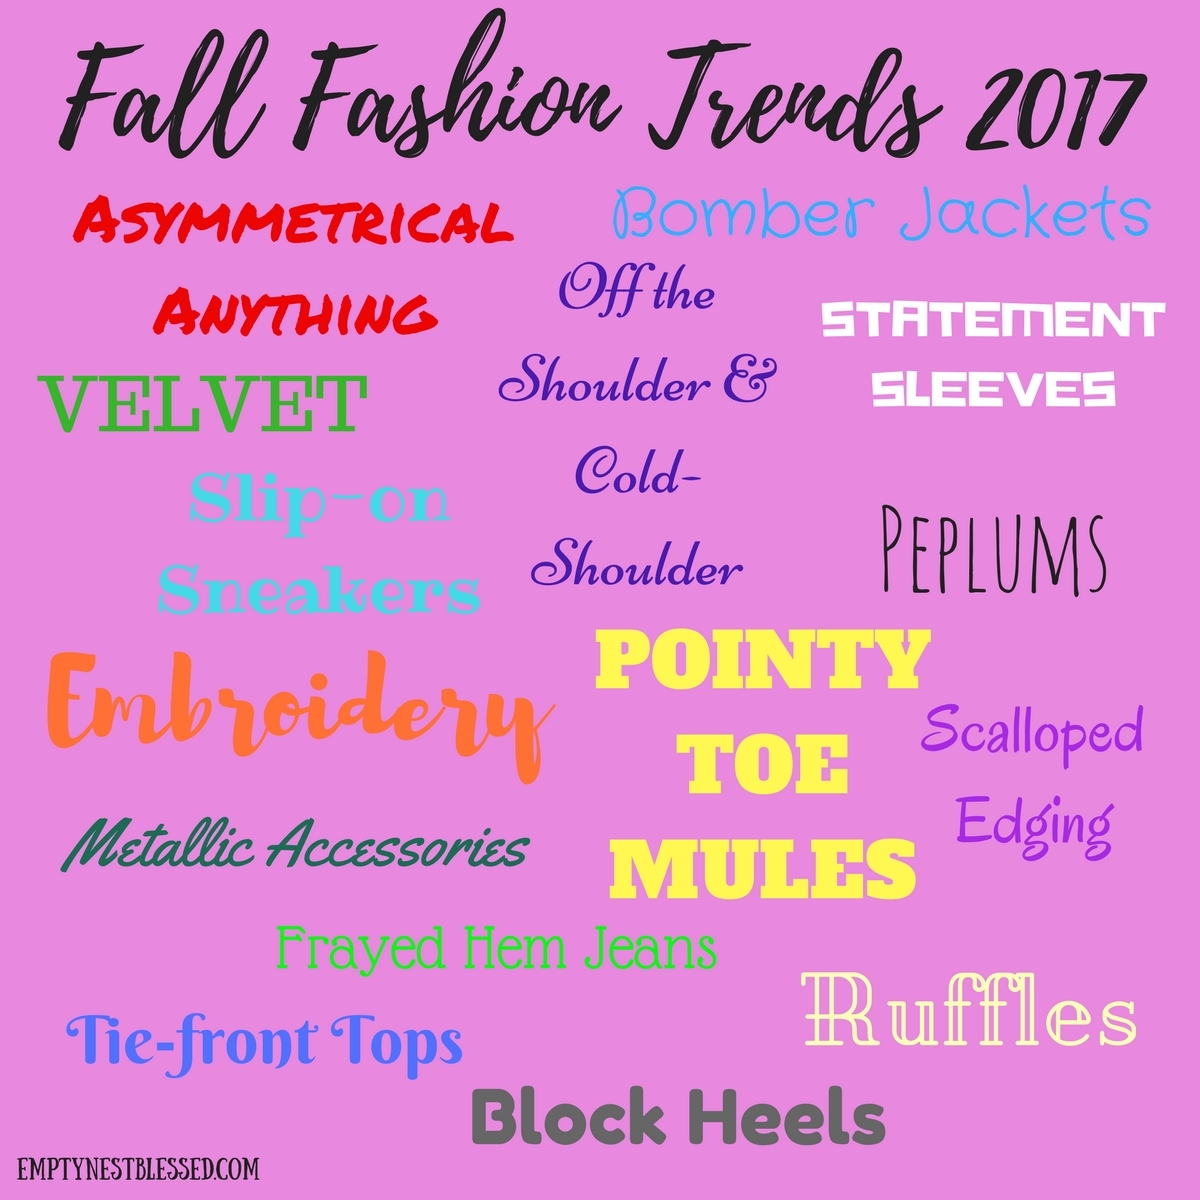 2017 fall fashion trends, fall fashion trends, fall fashion, fall trends, fall fashion trends 2017, fall style, fall style trends, fall style 2017, Nordstrom anniversary sale 2017